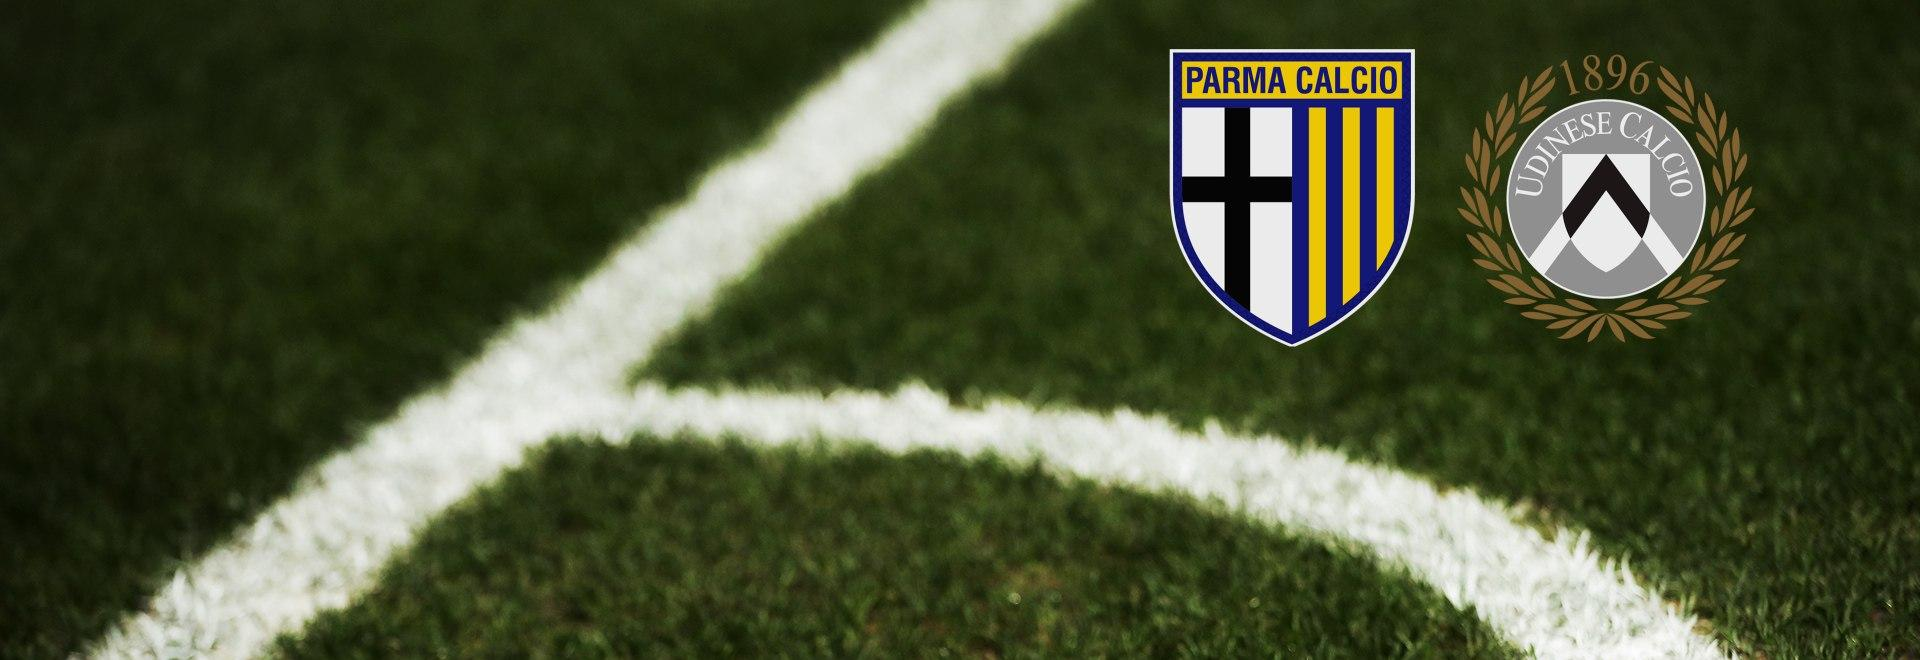 Parma - Udinese. 23a g.